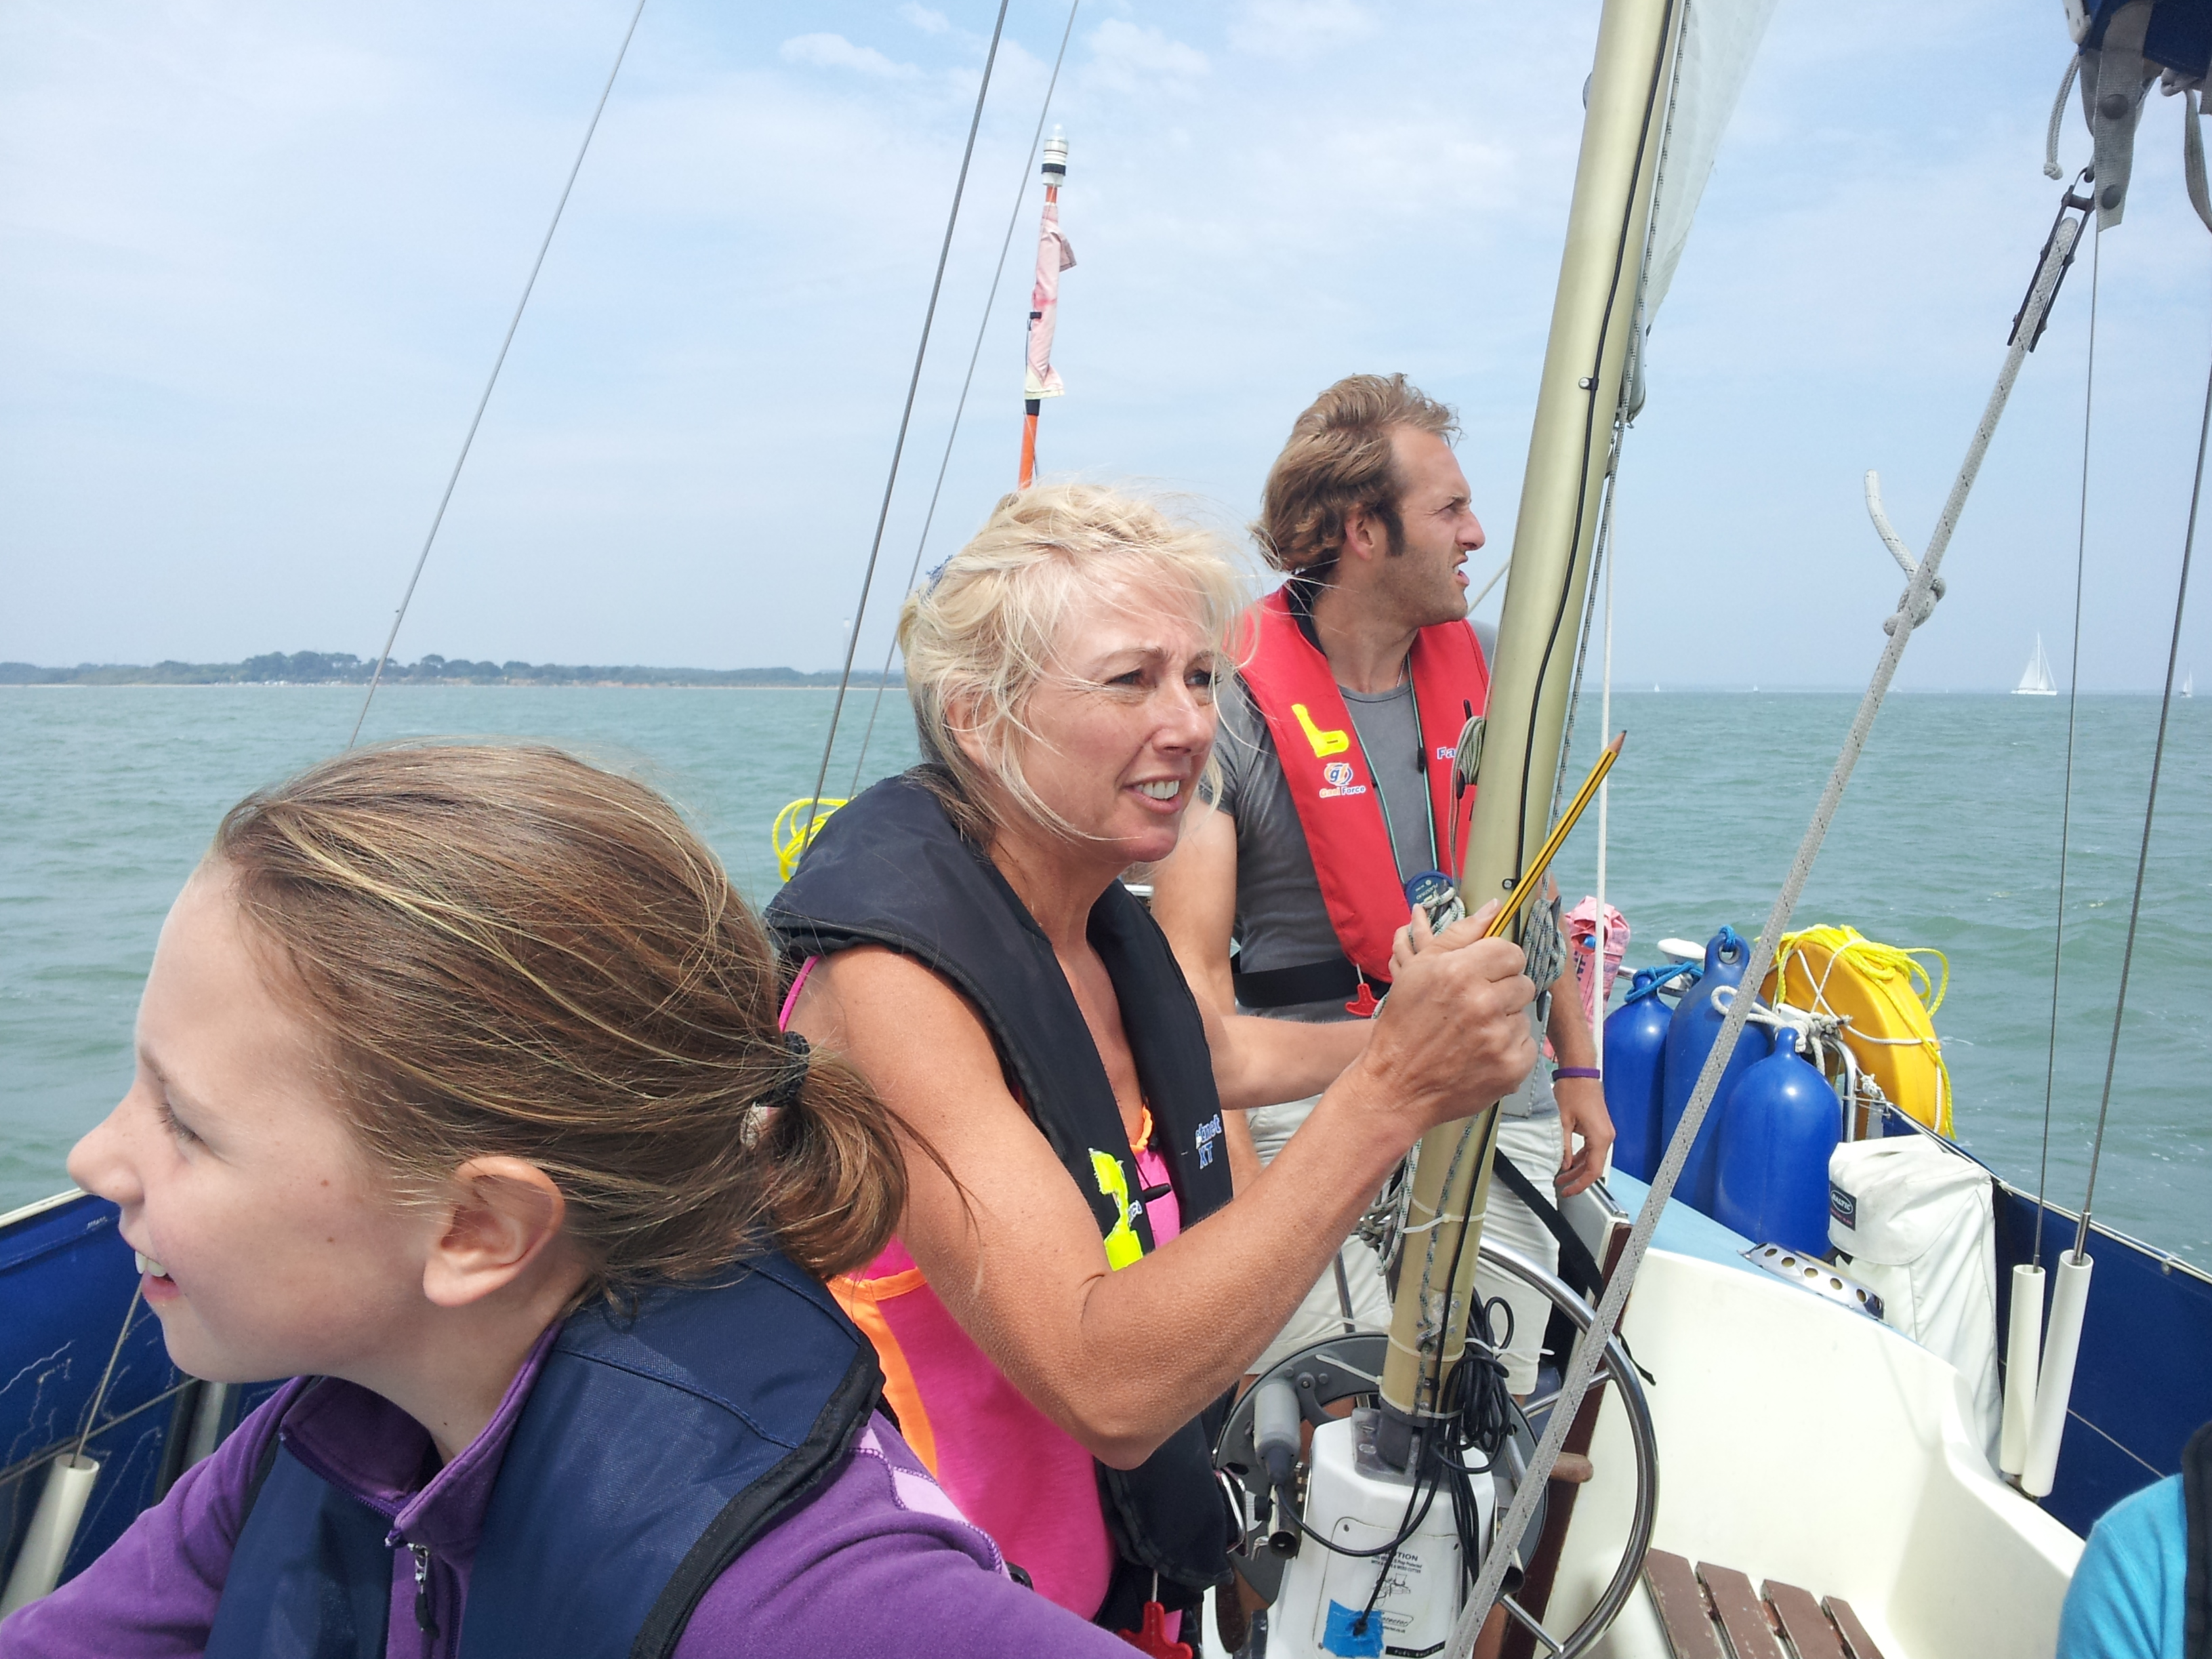 RYA Competent Crew sailing course solent chichester southampton